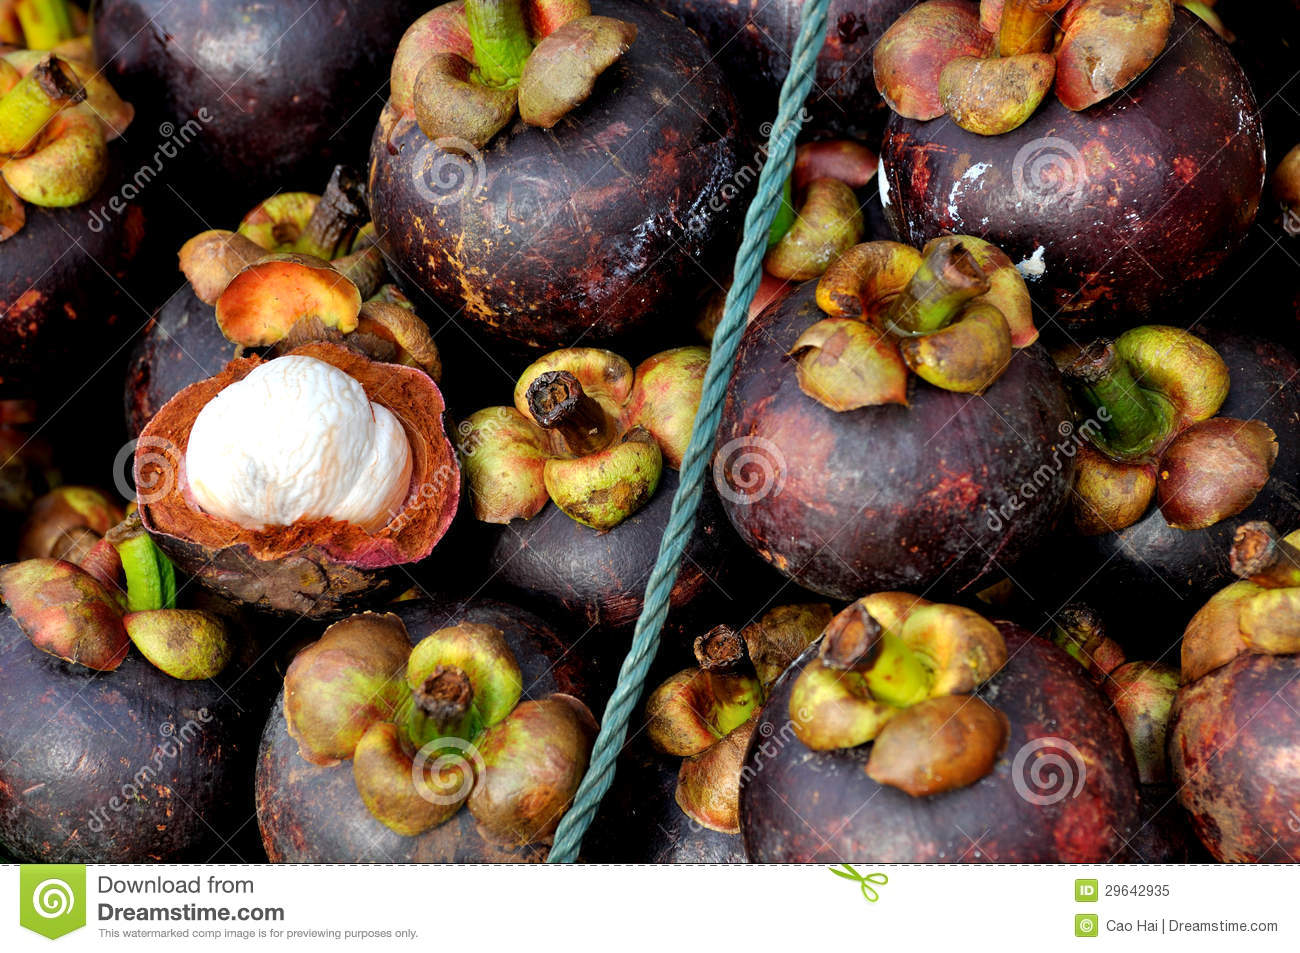 What are the Benefits of Mangosteen Capsules?